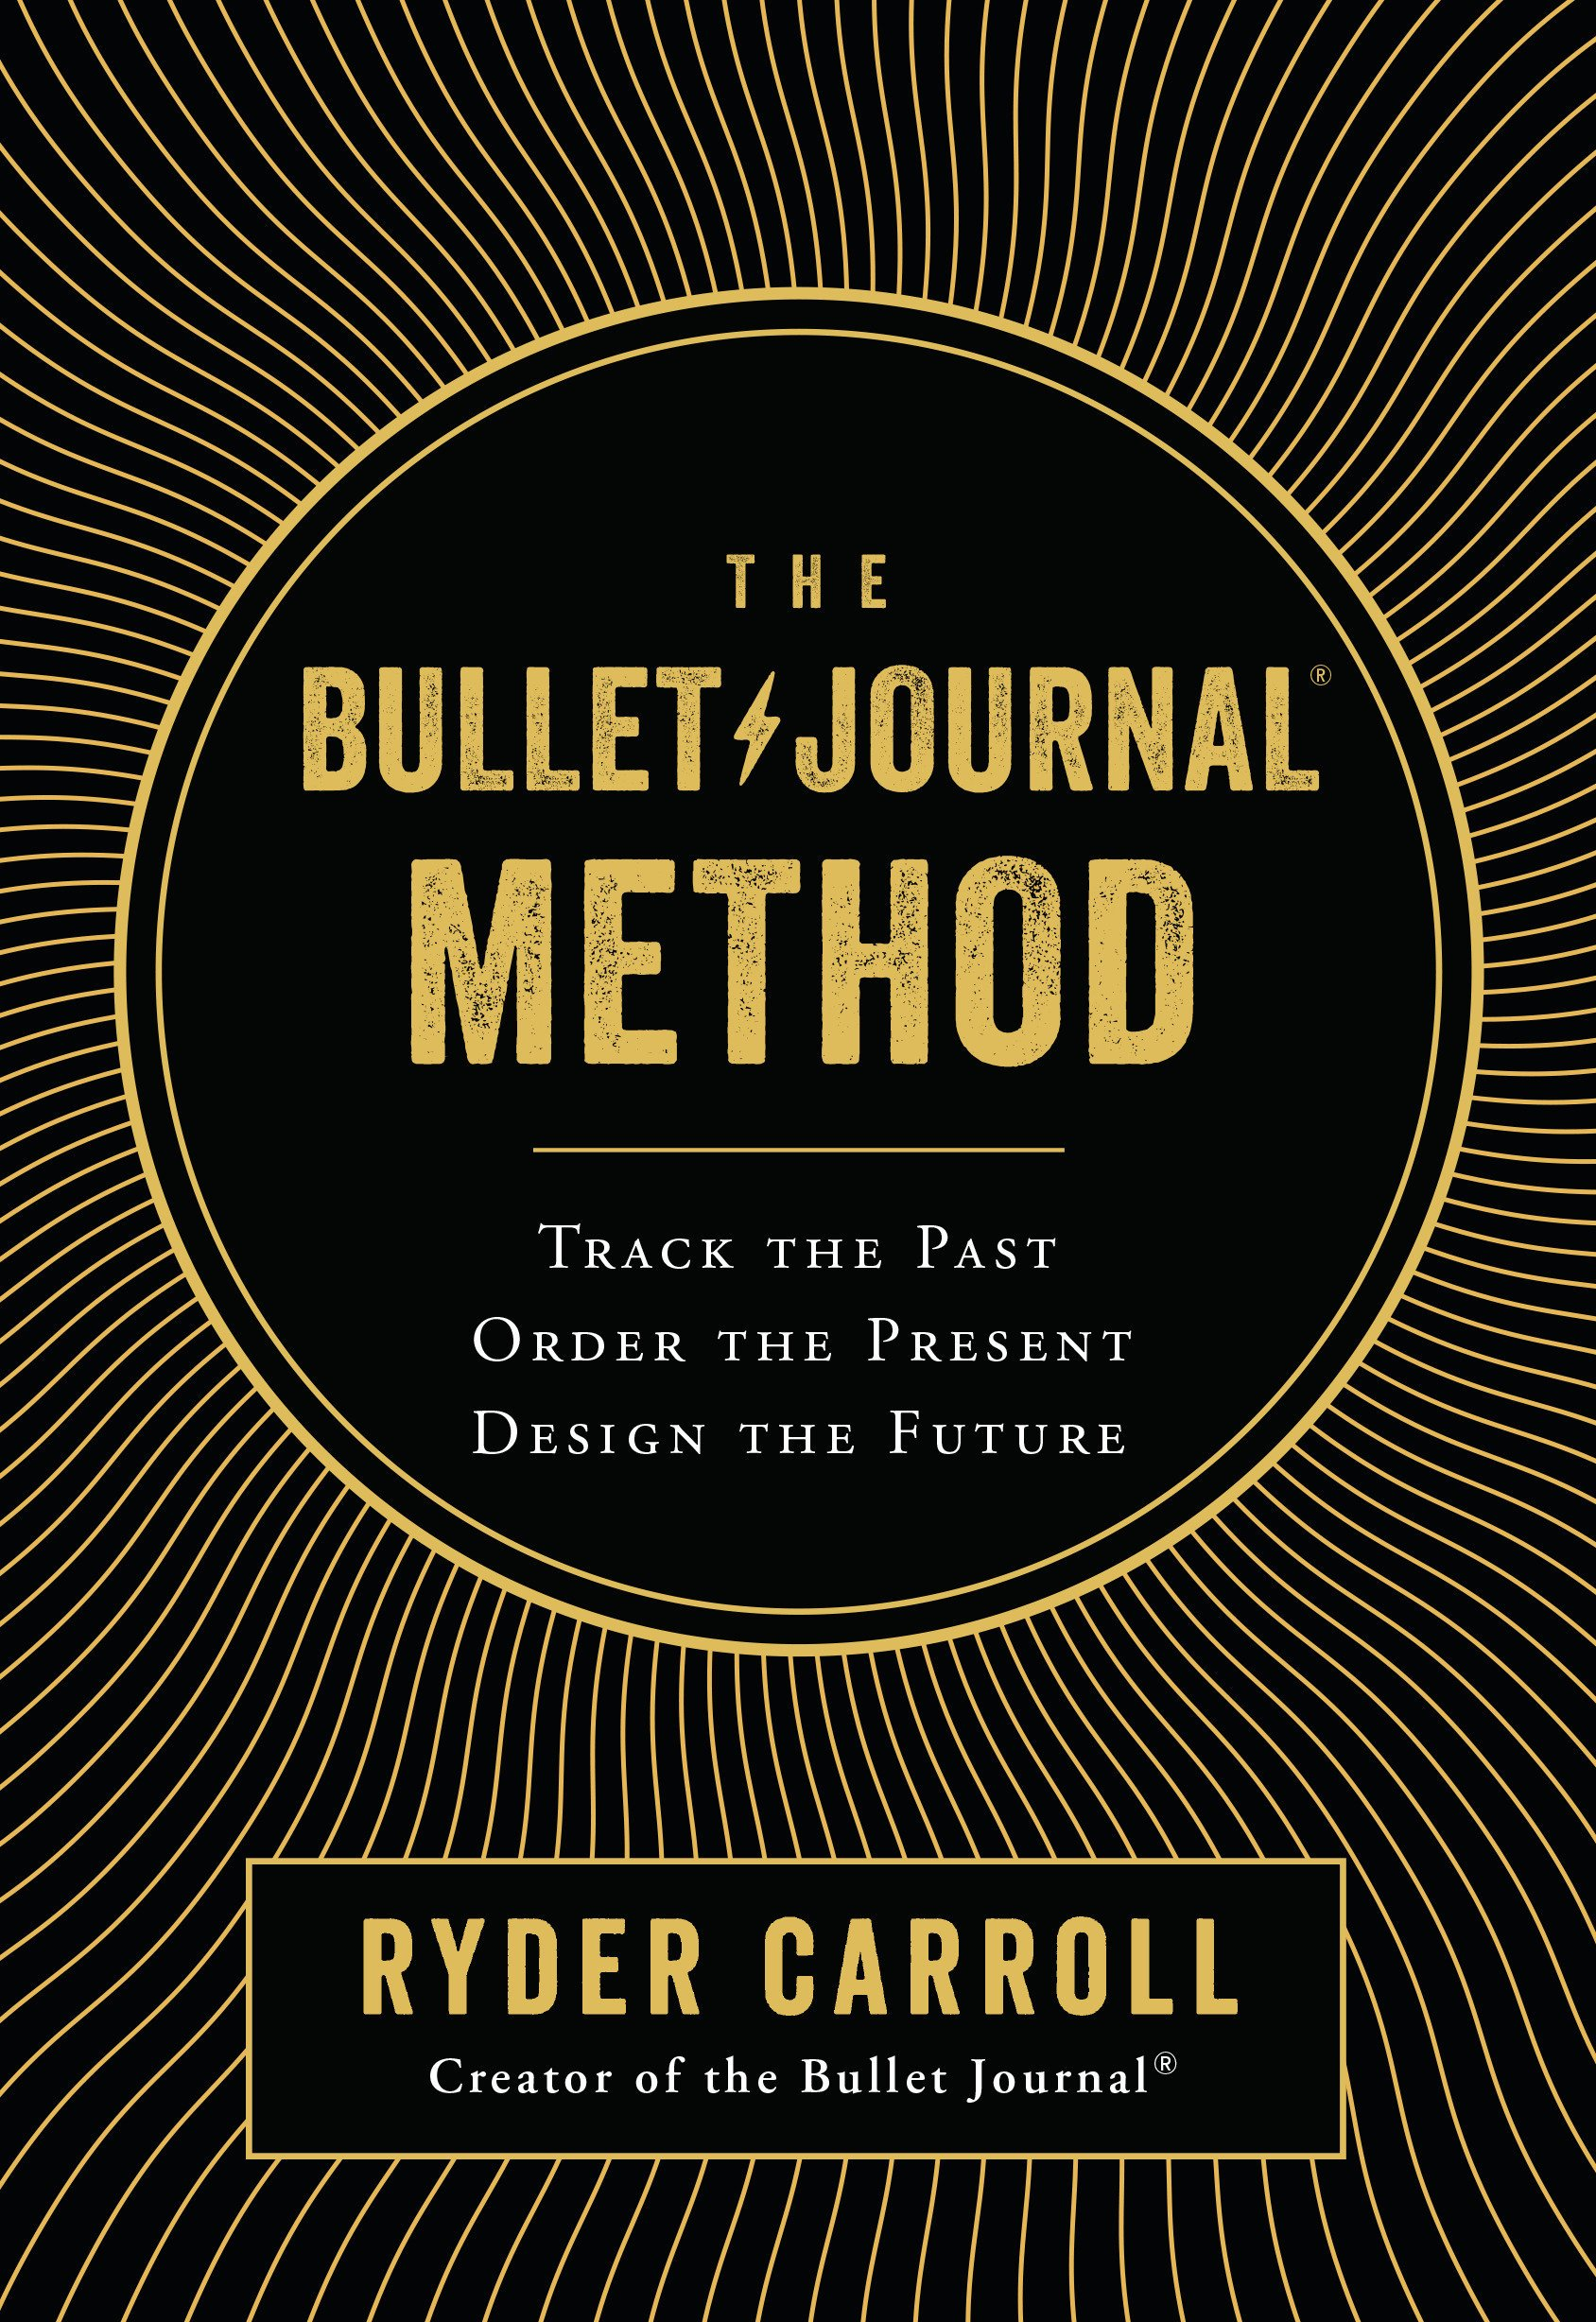 The long-awaited first book by the founder of the enormously popular Bullet Journal® organizational system.